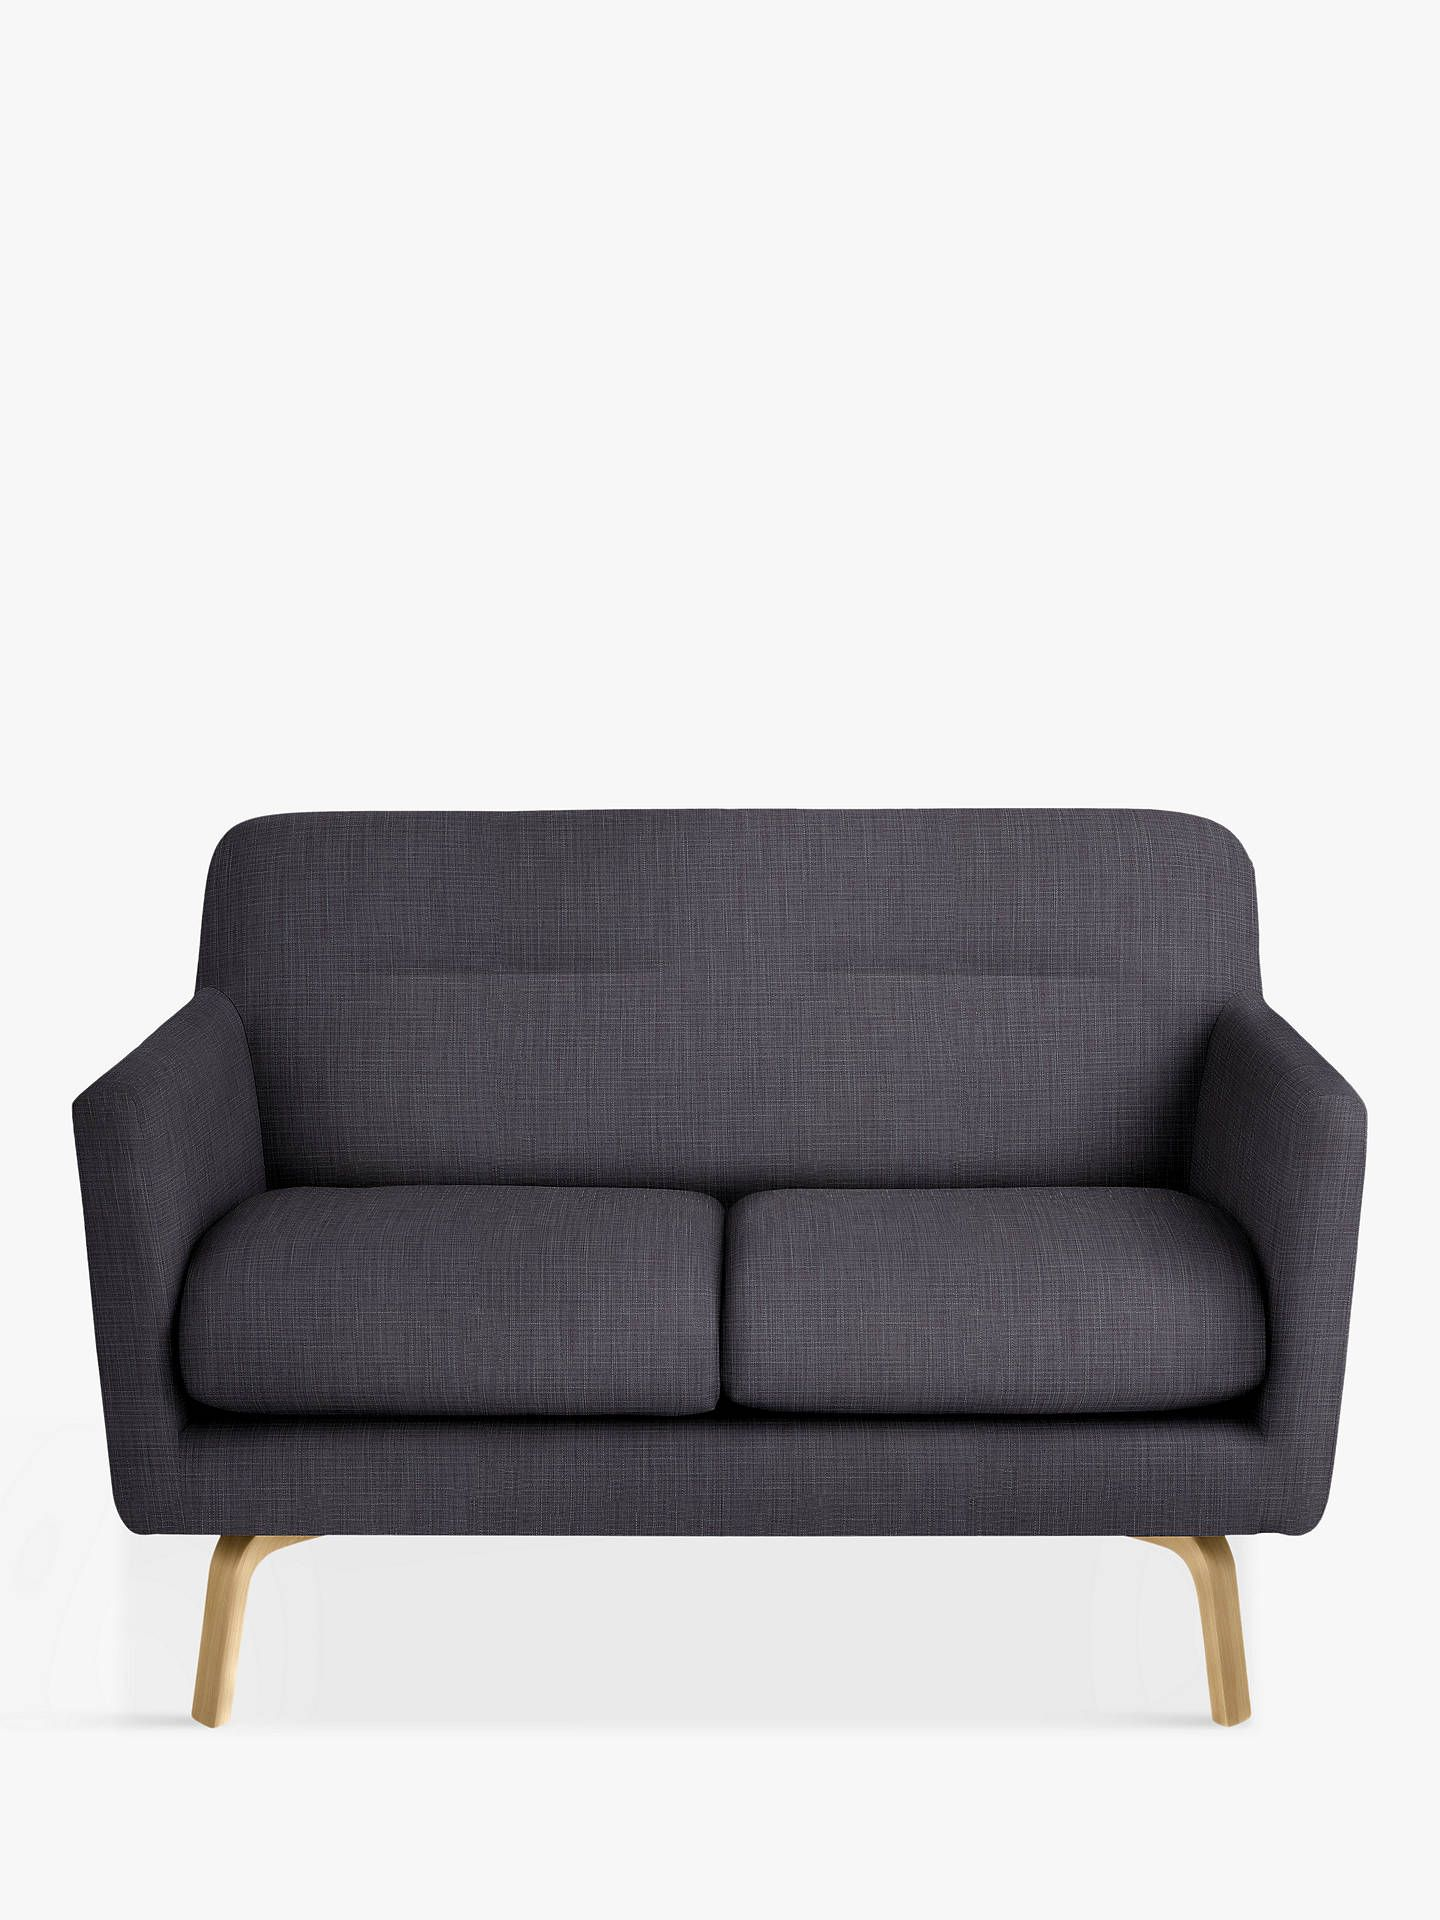 house by john lewis archie small 2 seater sofa glyn charcoal rh pinterest com